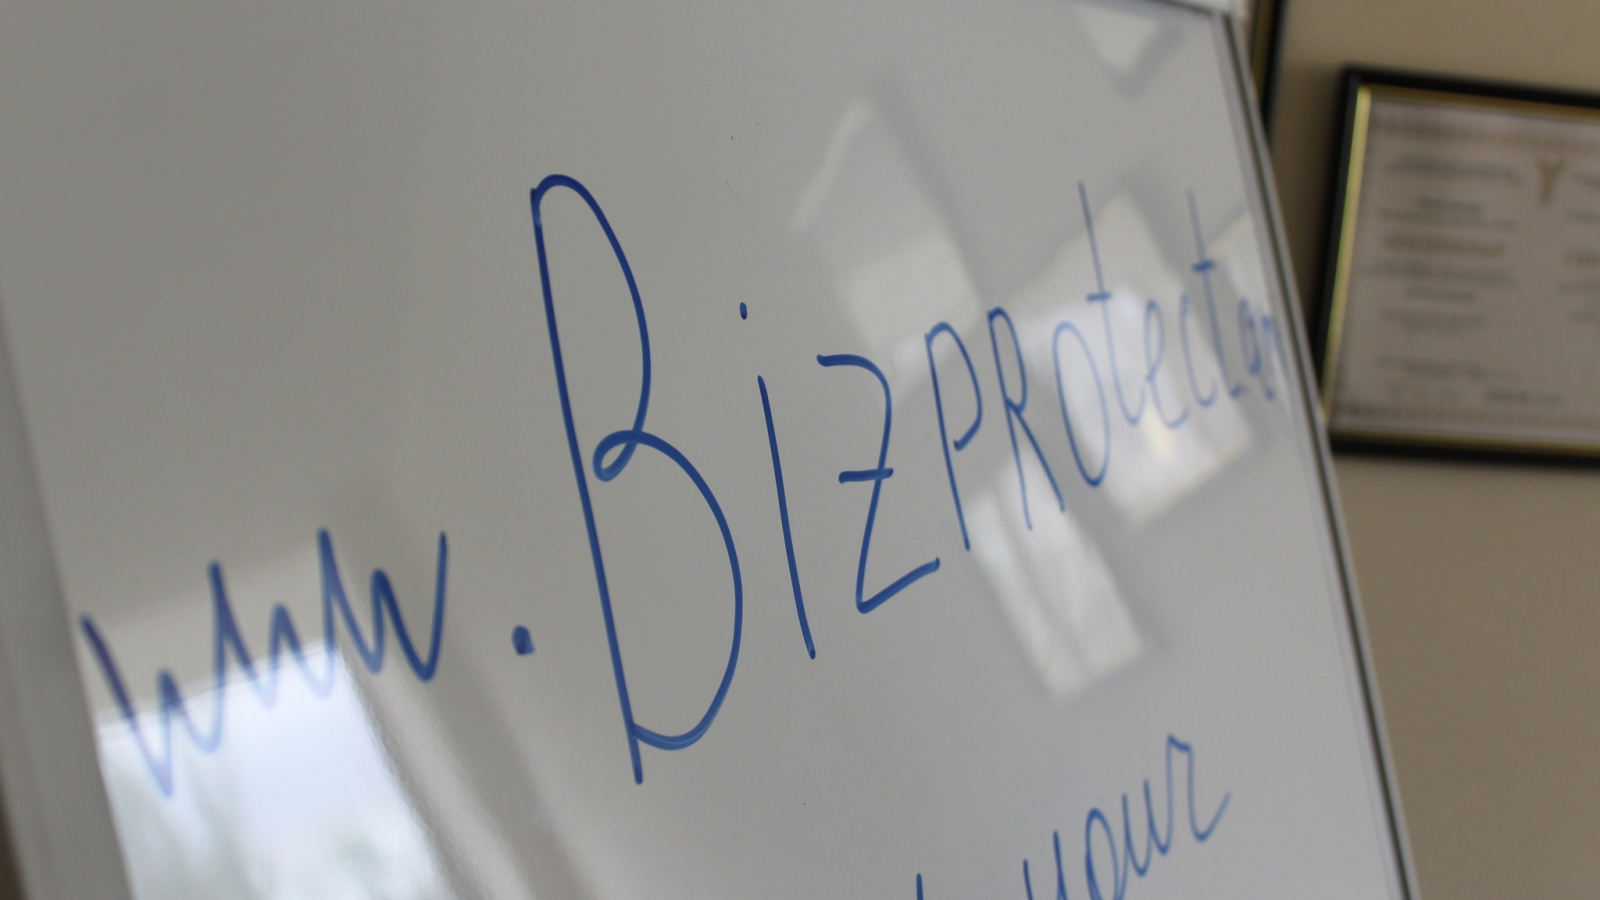 Bizprotect.am Armenian whistle-blowing website